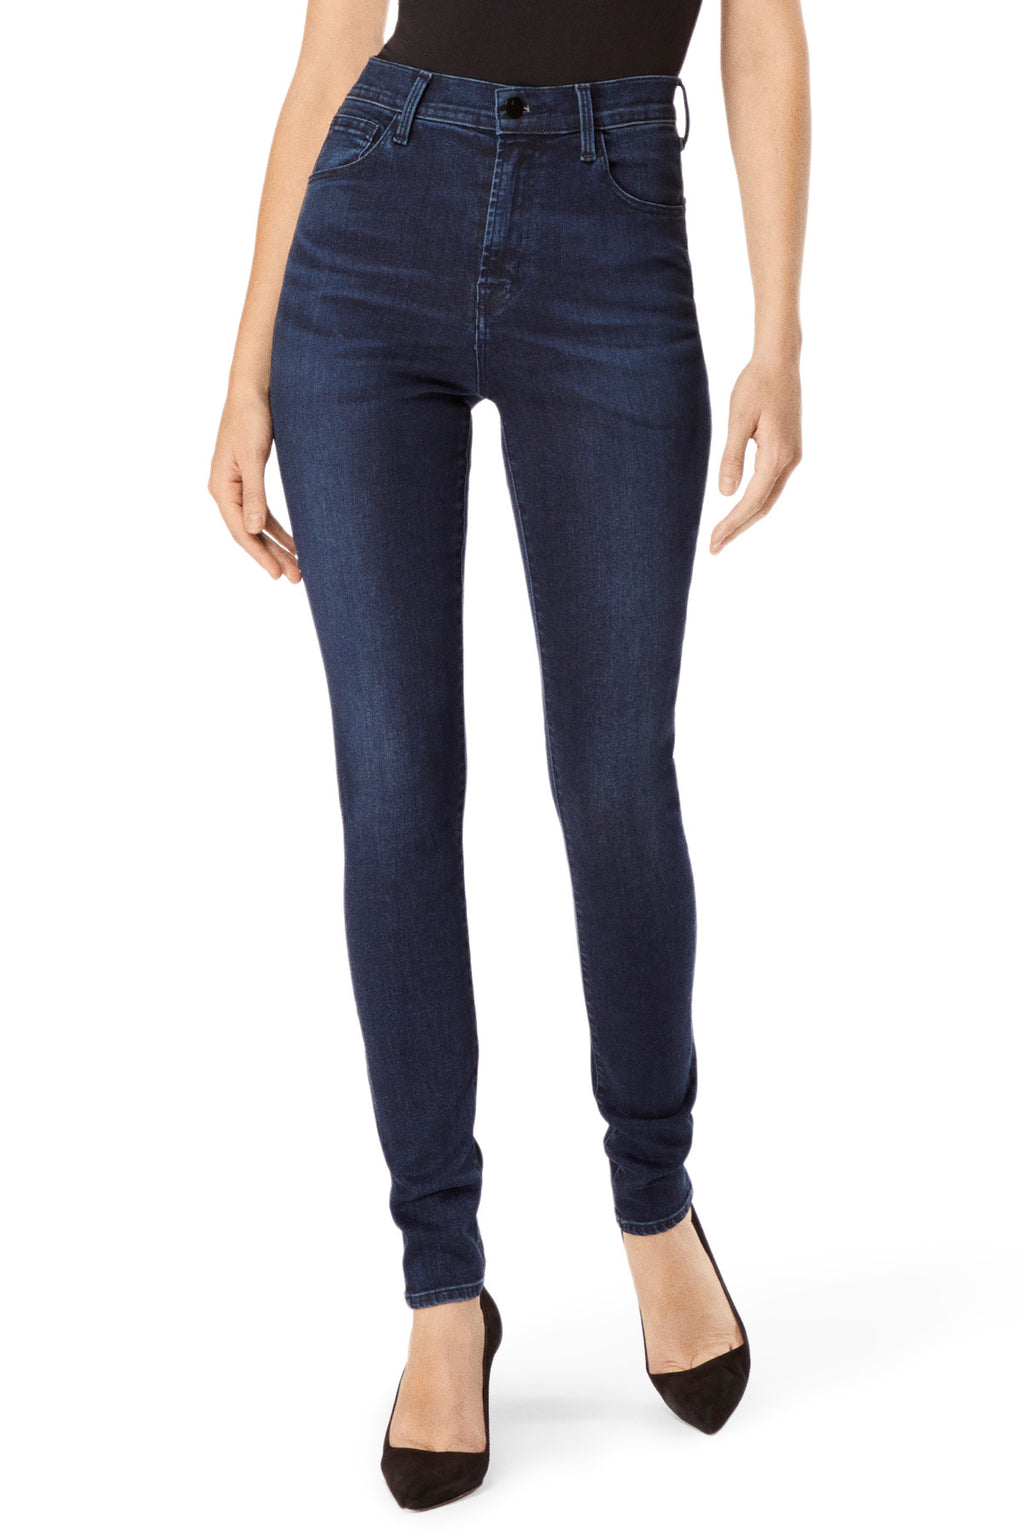 Carolina Super High Rise Skinny